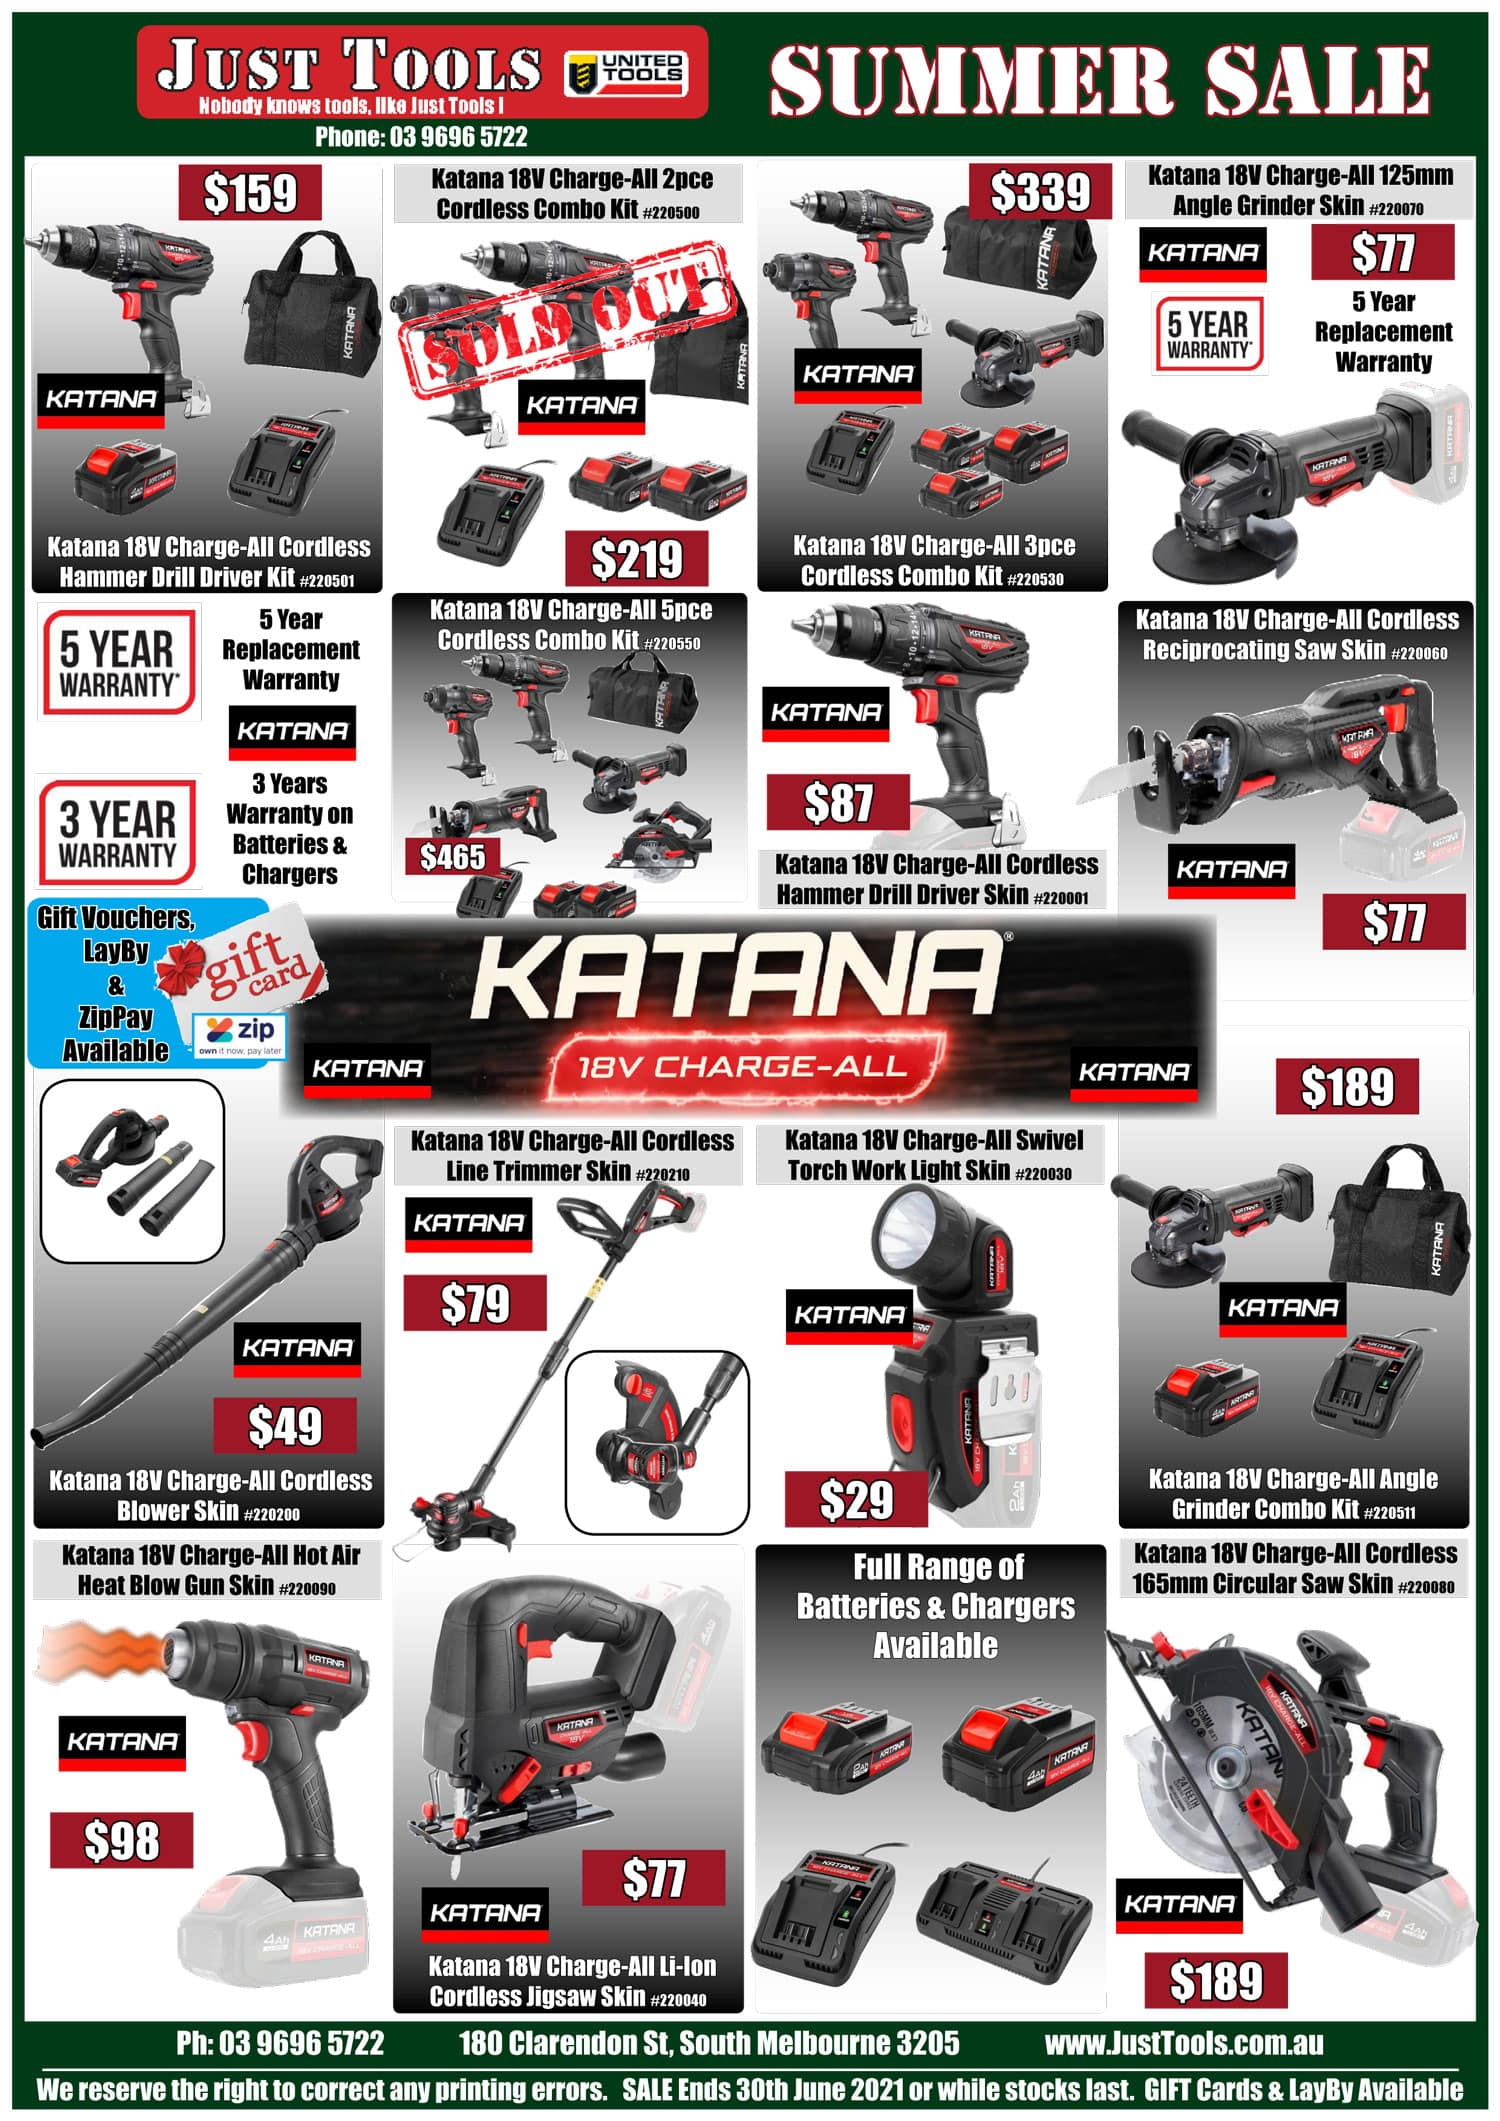 just-tools-summer-sale-page-1-v6-min.jpg